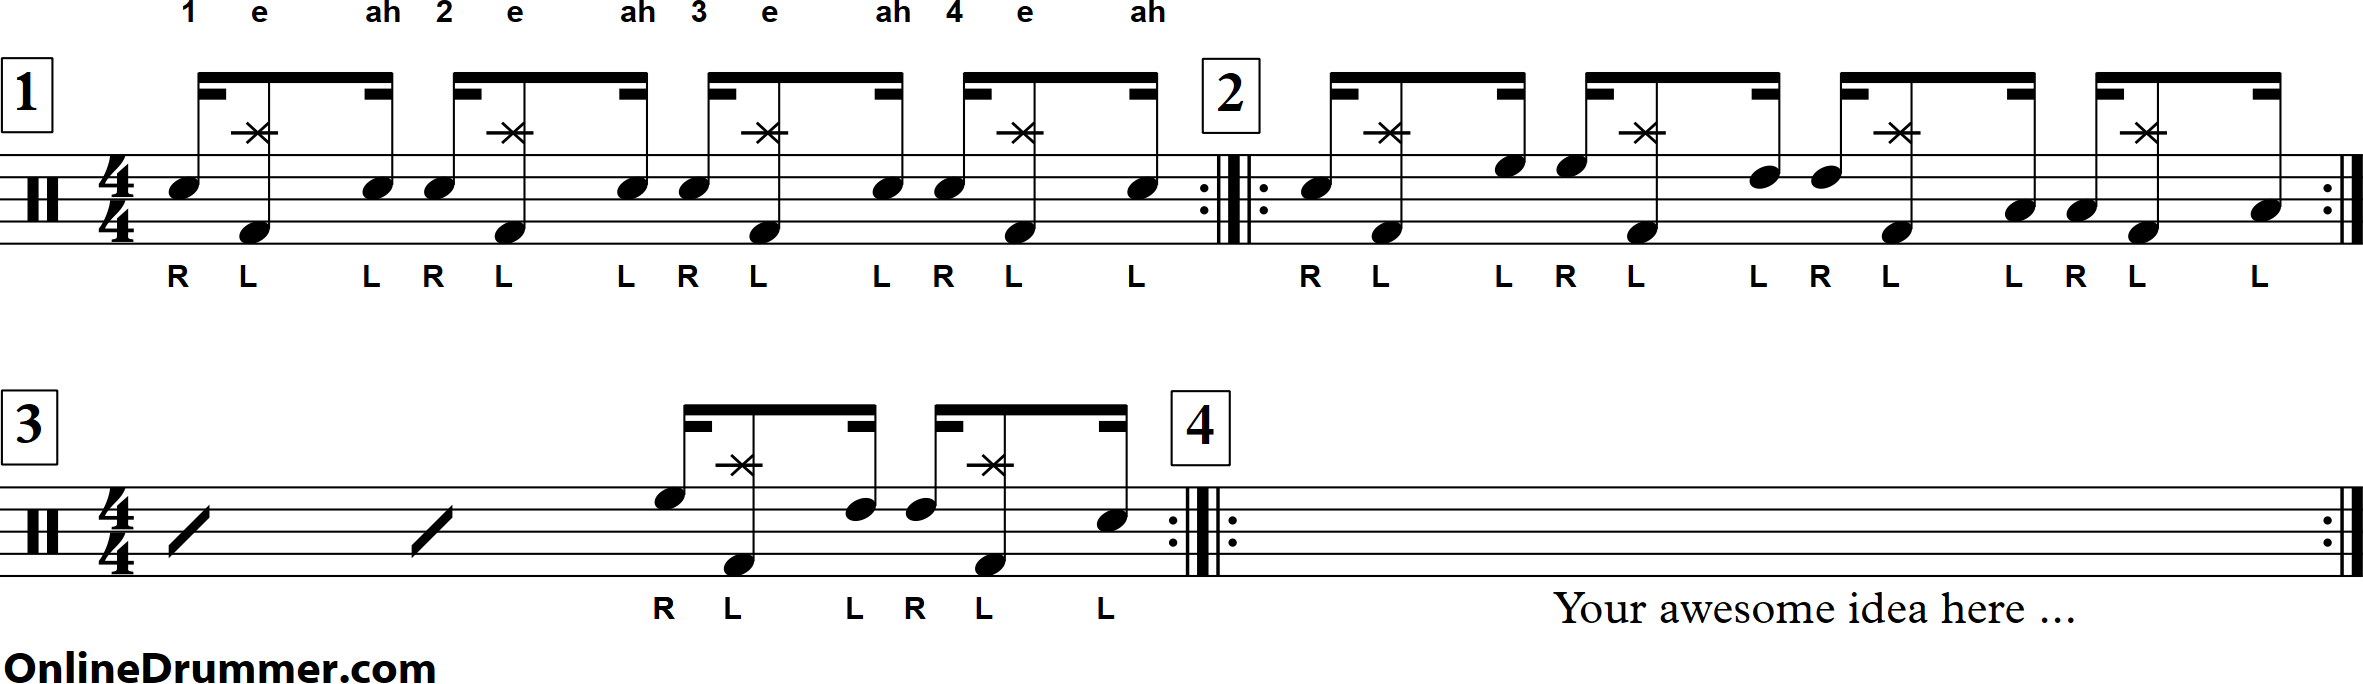 Drum Fill #7 - Keeping It Syncopated